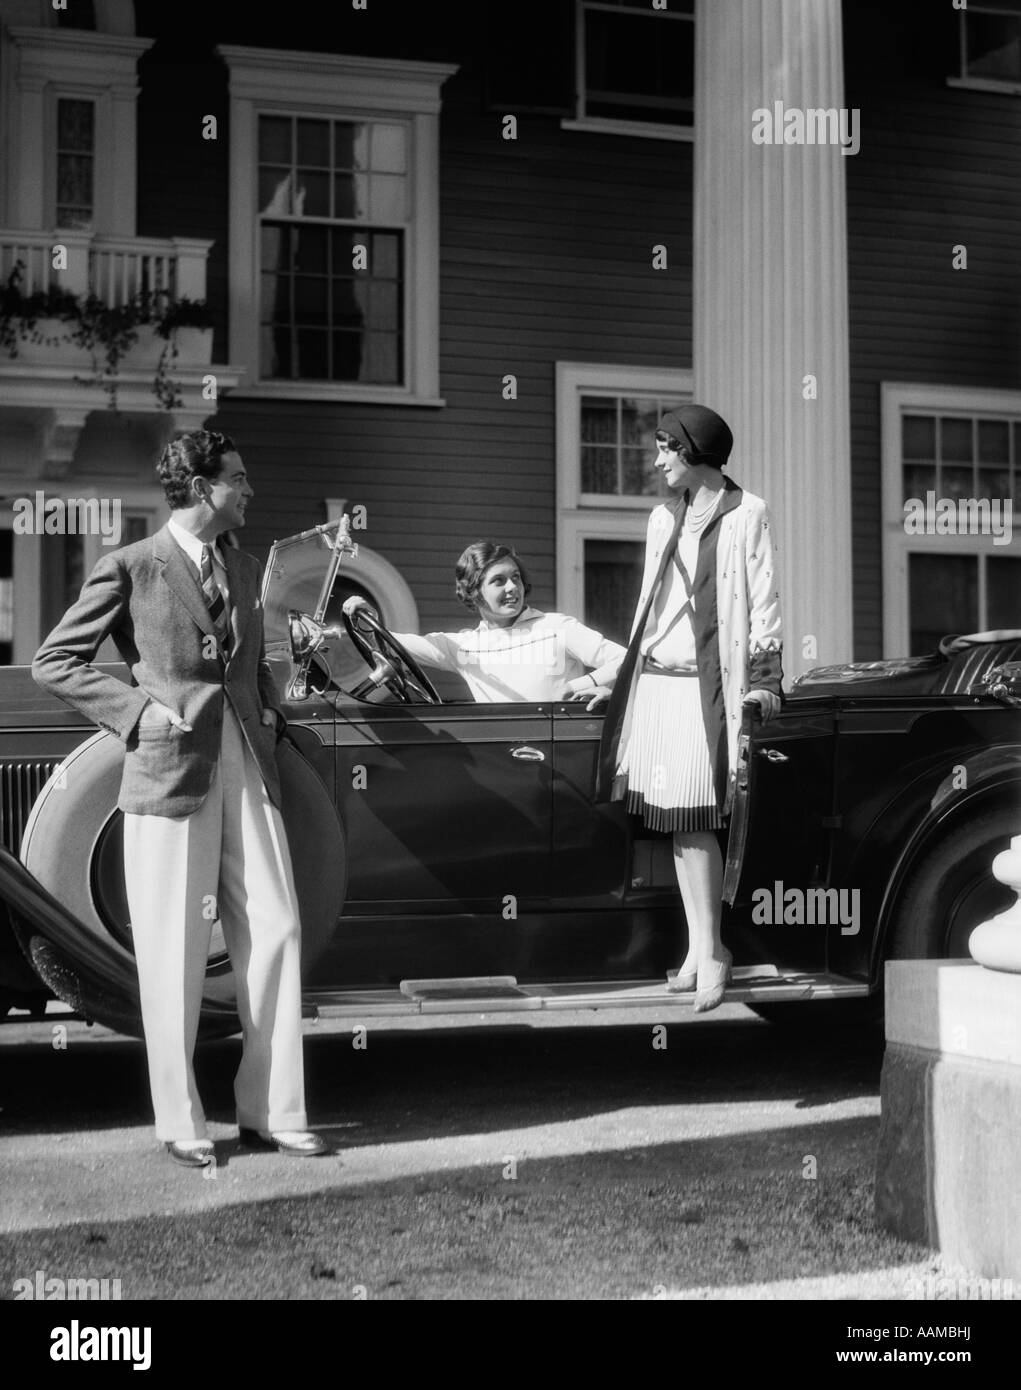 1930s MAN AND TWO WOMEN IN STYLISH CLOTHES WITH TOURING CAR PARKED IN FRONT OF ELEGANT LARGE HOUSE - Stock Image